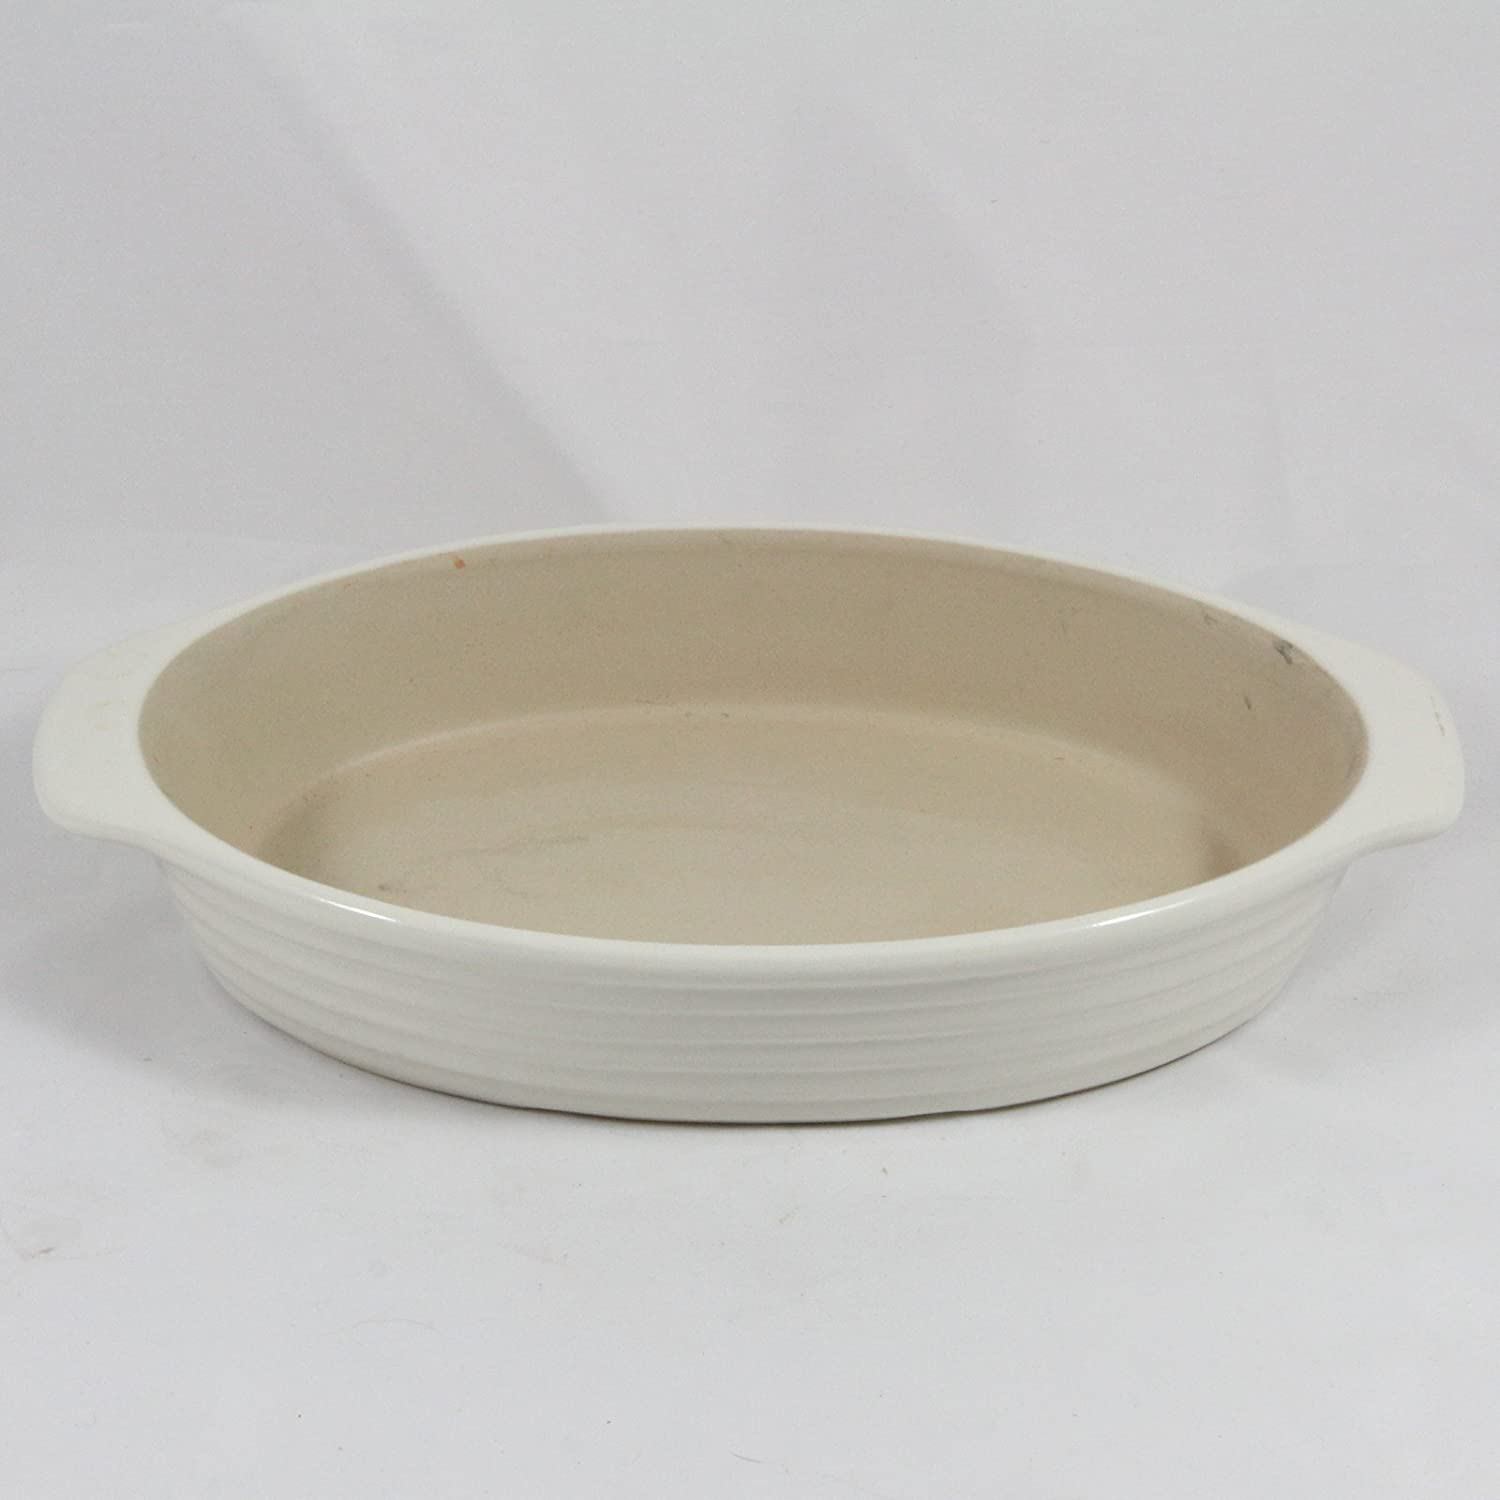 The Pampered Chef Small Ovalベイカー B000S0CJ10